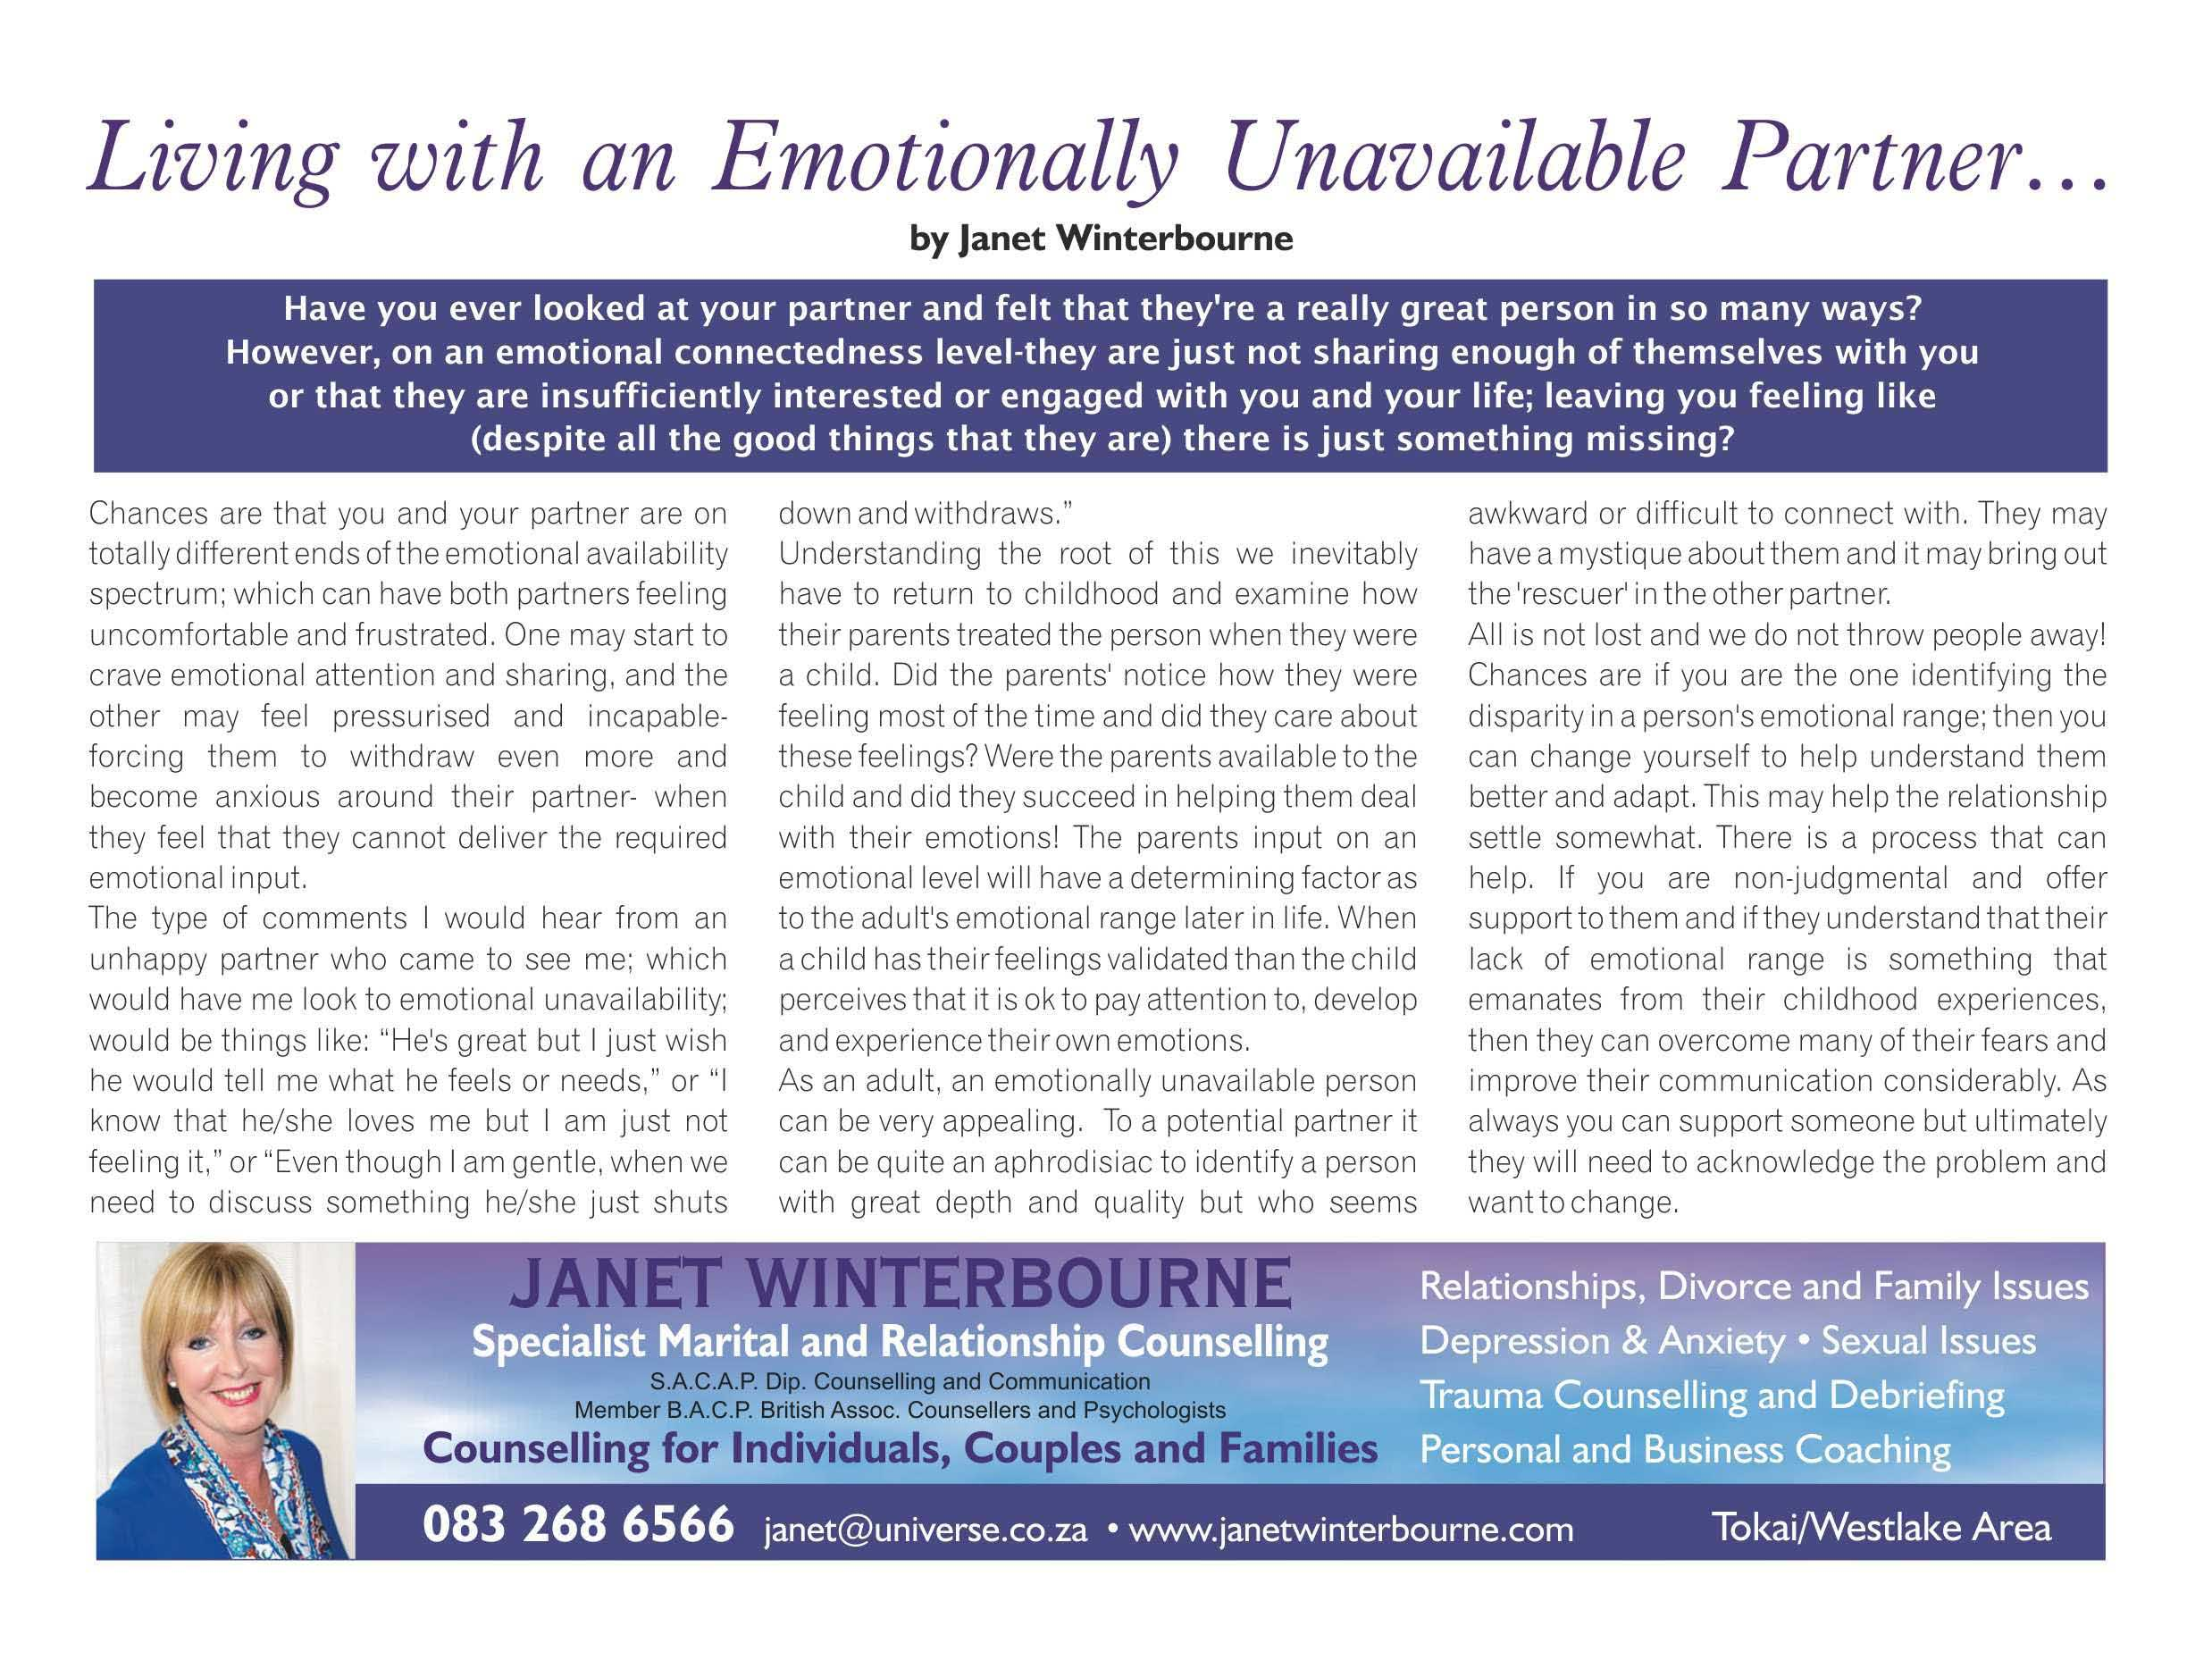 Living with an emotionally unavailable partner | Psychologist Cape Town